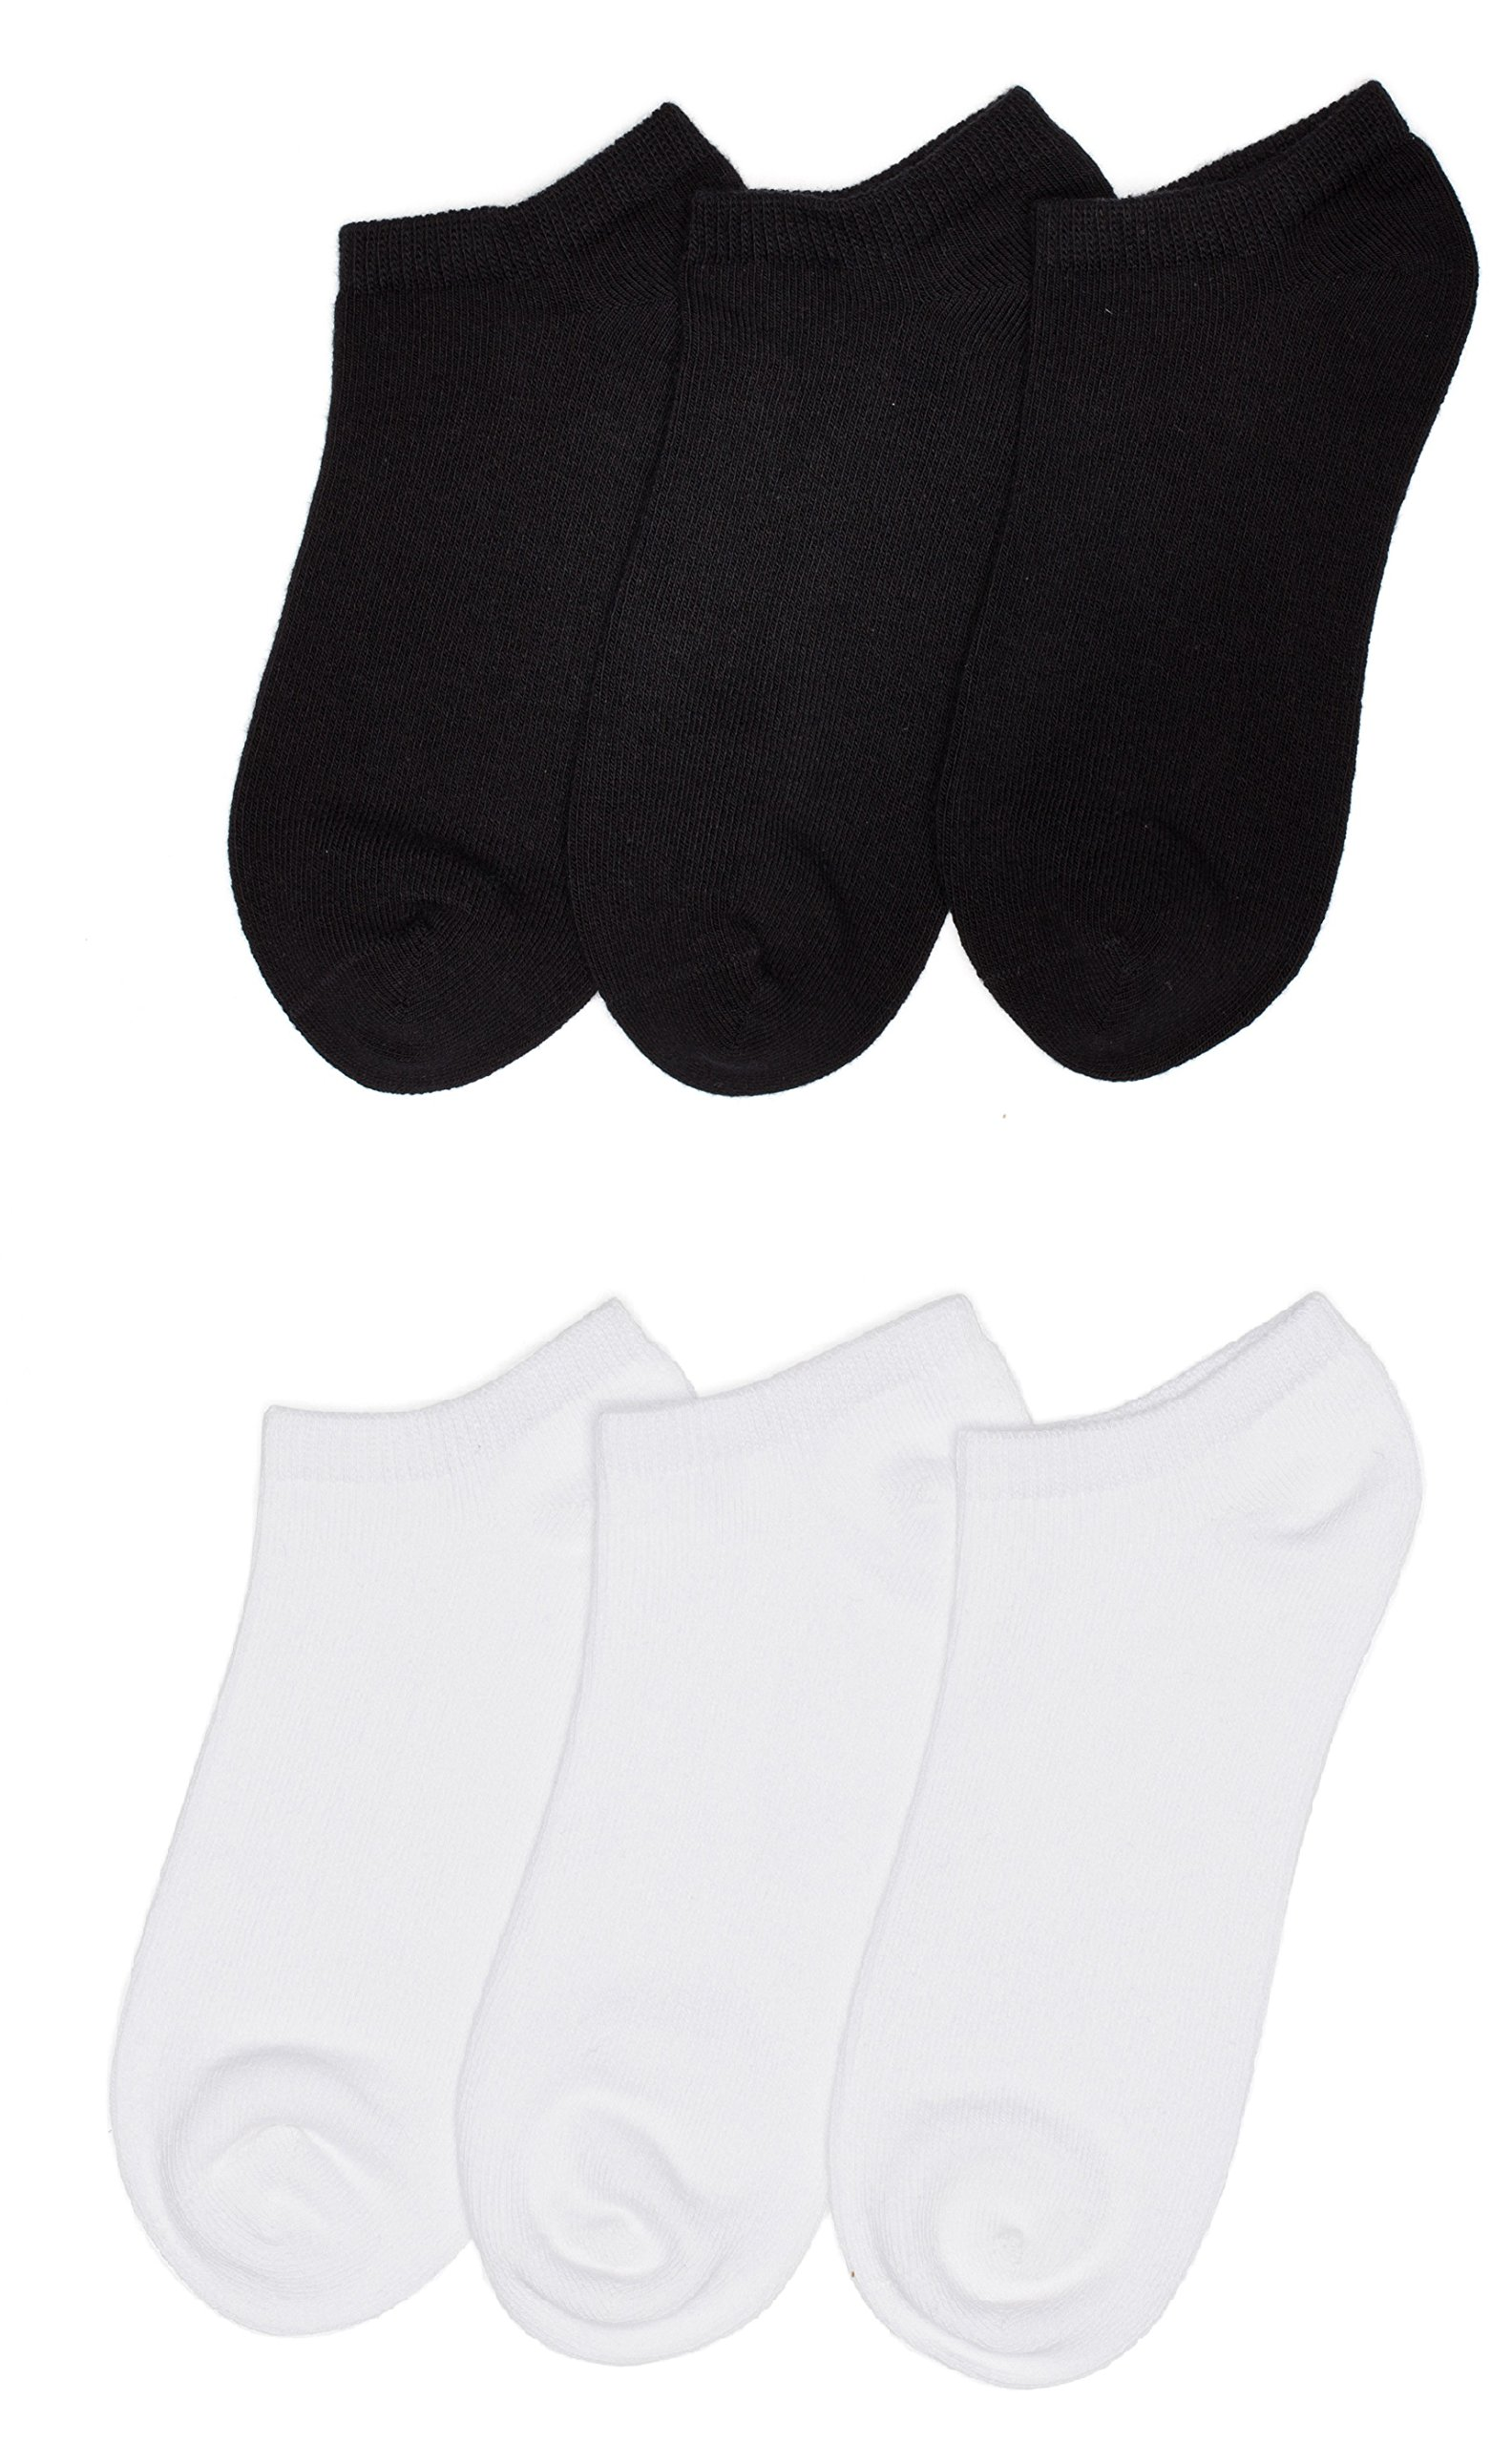 Trimfit Unisex Kids No Show Sport Liner Comfortoe Socks (Pack of 6), Black/White, M